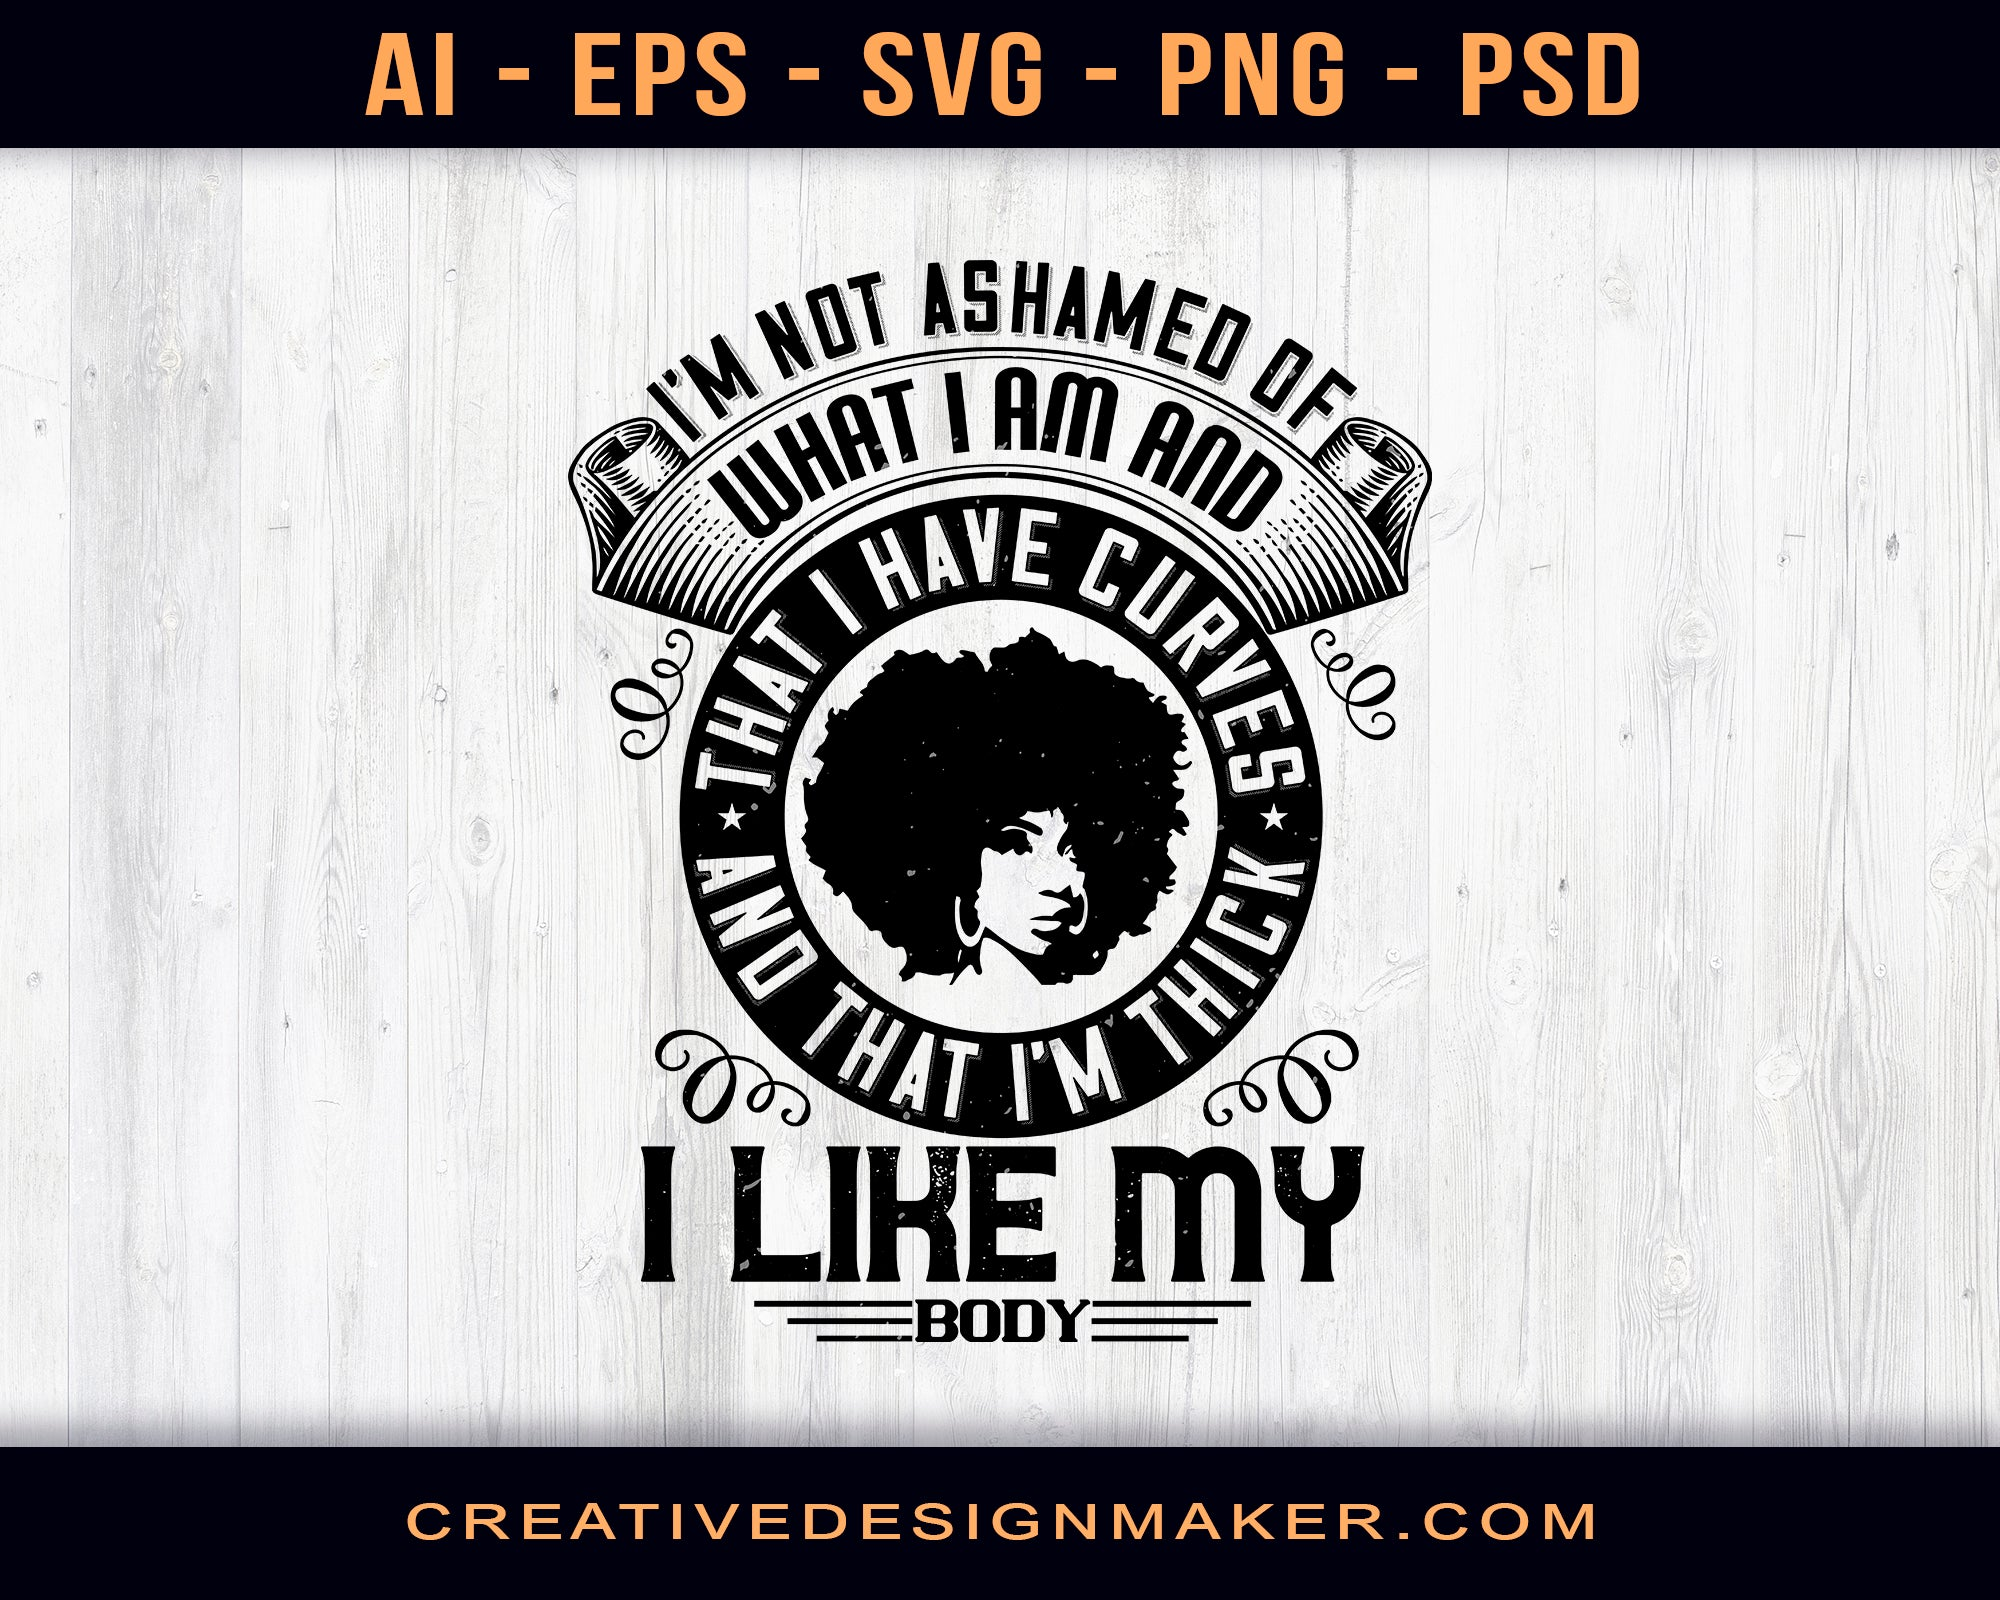 I'm Not Ashamed Of What I Am And That I Have Curves And That I'm Thick. I Like My Body Afro Print Ready Editable T-Shirt SVG Design!